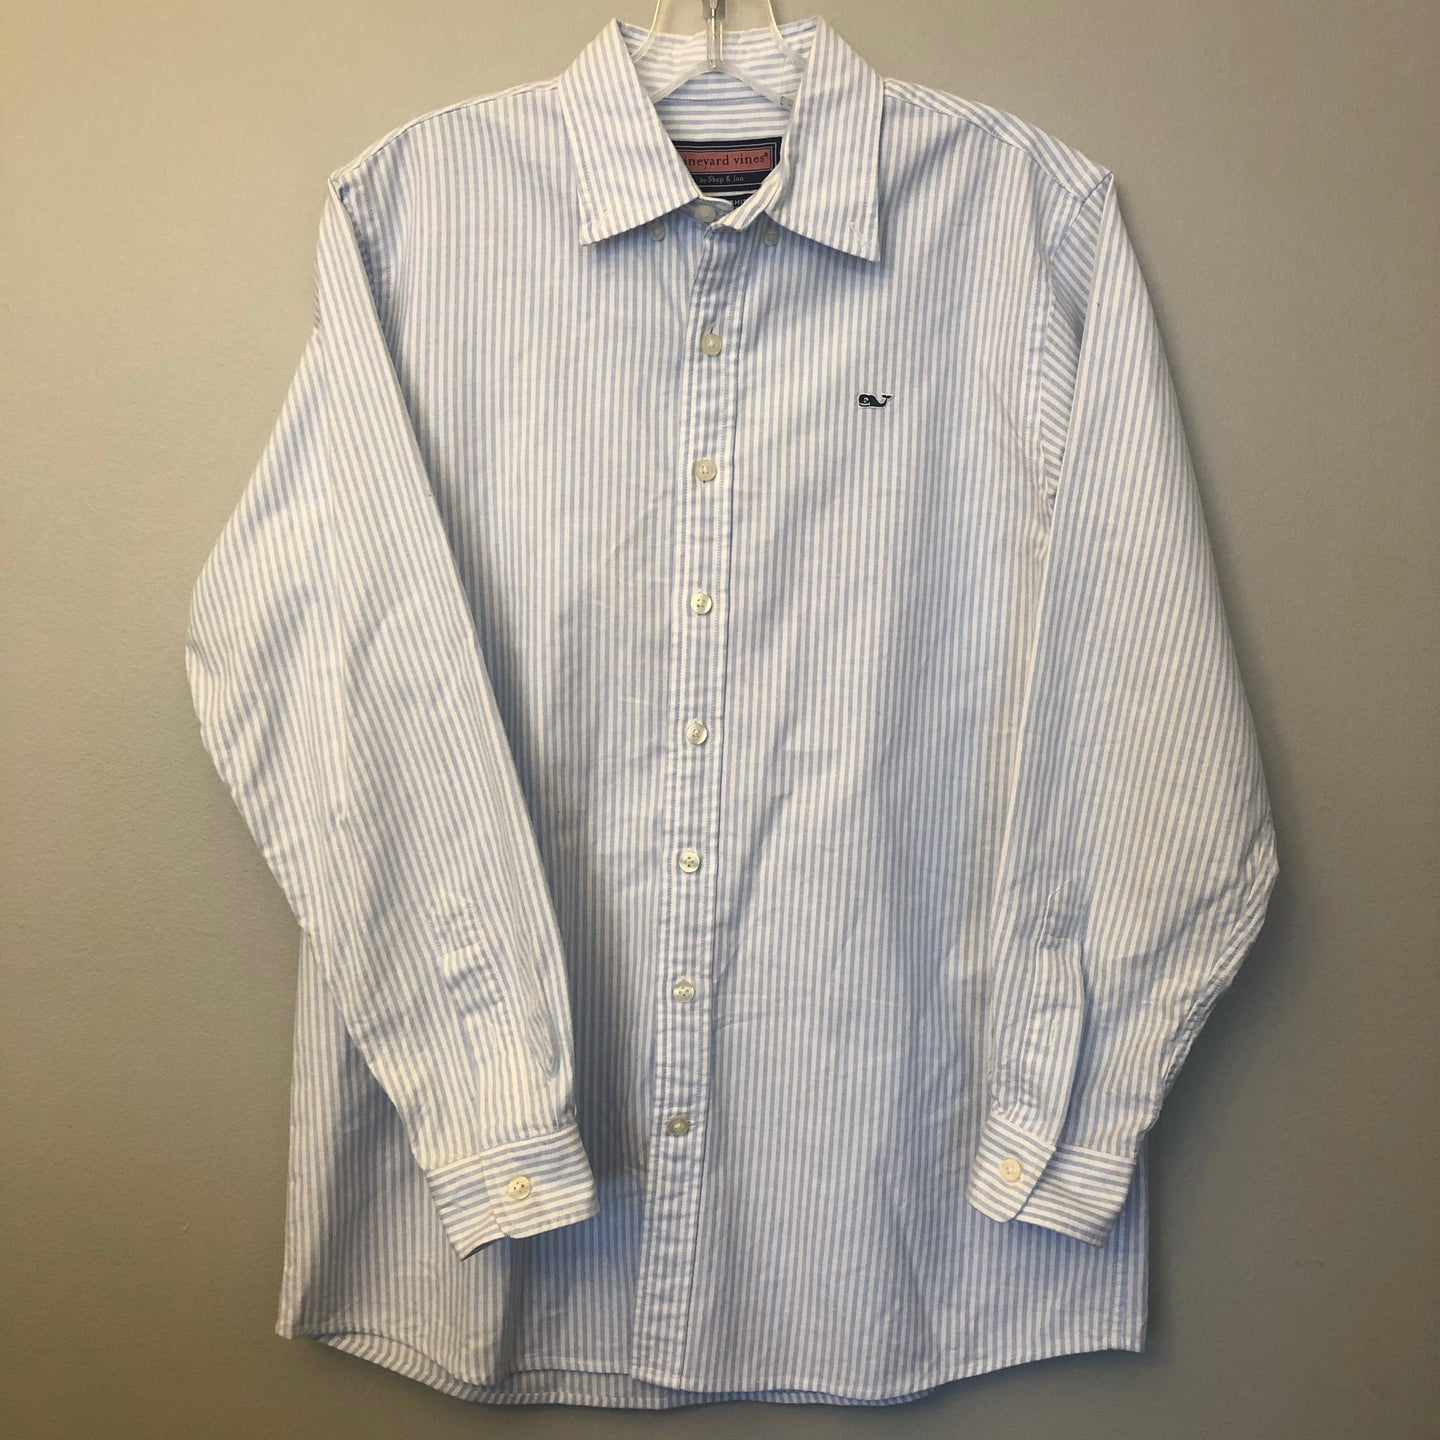 Vineyard Vines Striped Whale Shirt Button Down Size 16-18